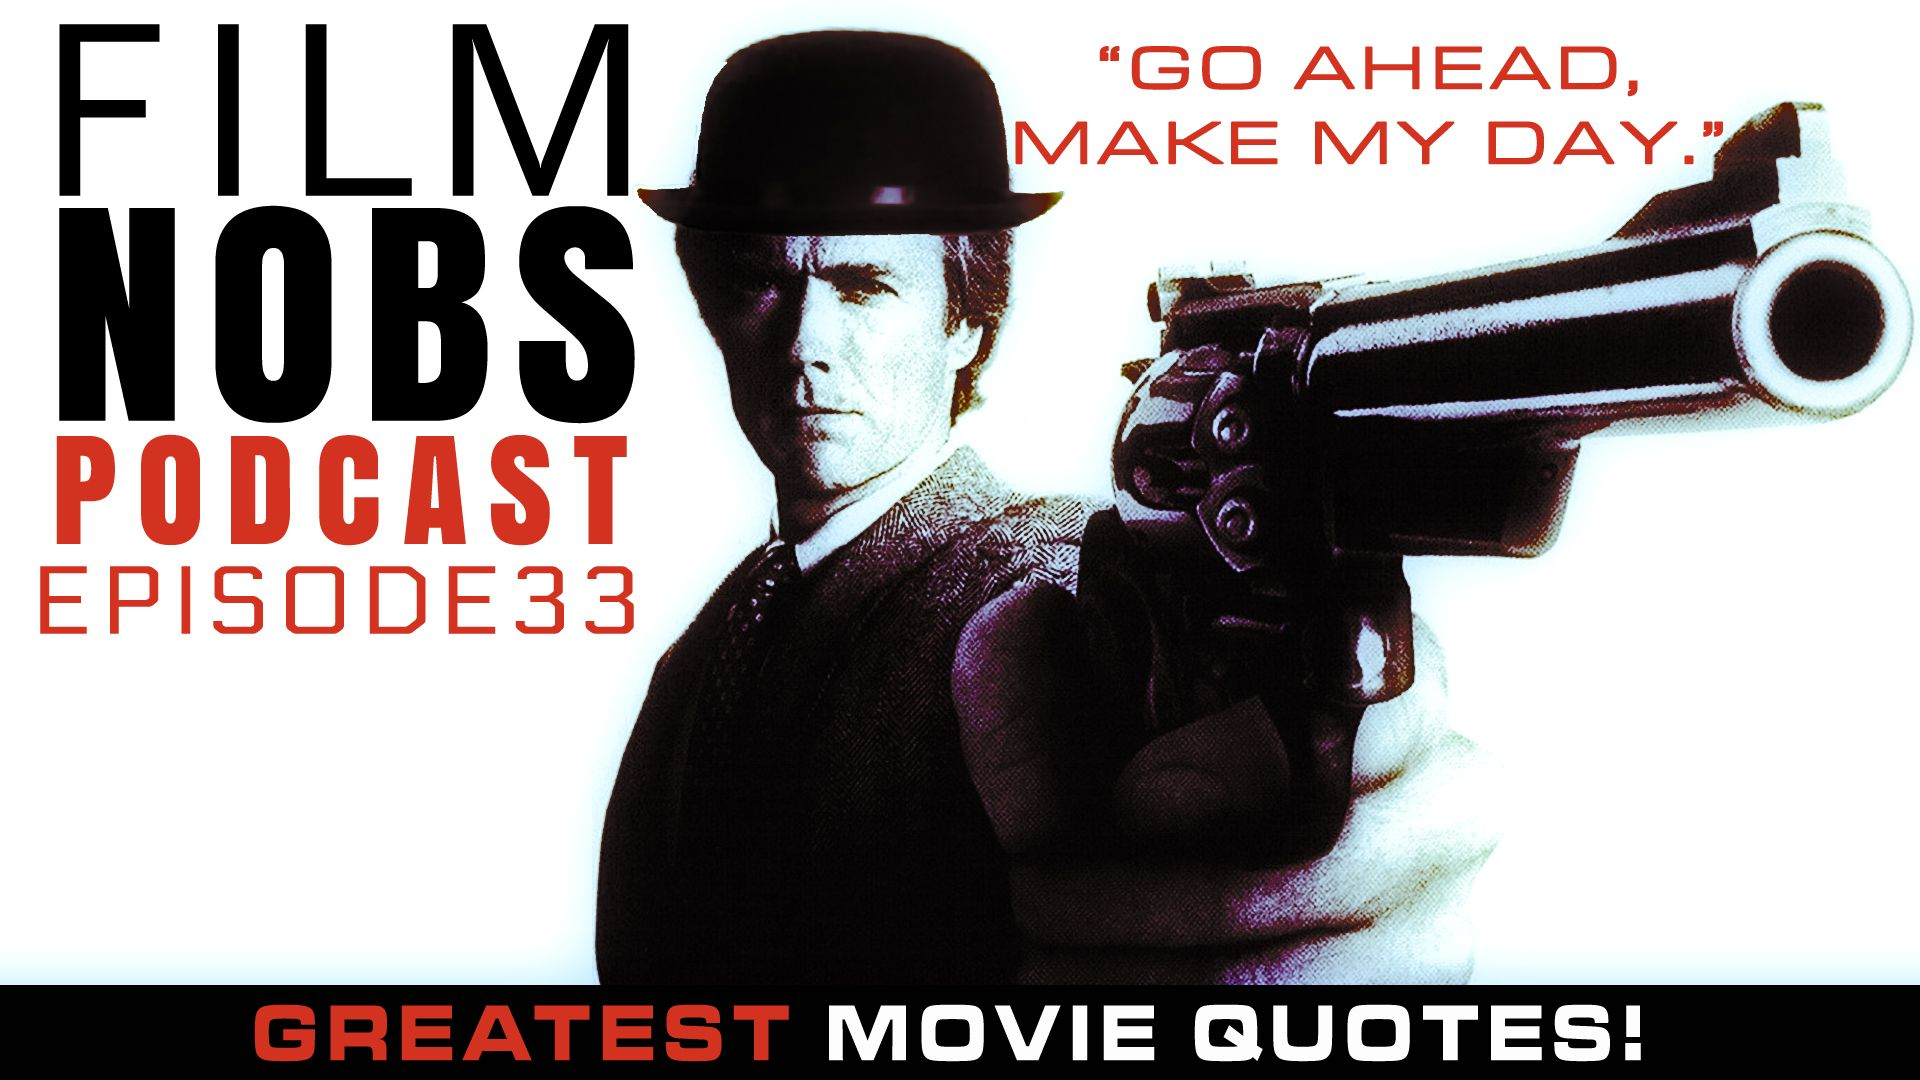 Film Nobs Audio Podcast Greatest Movie Quotes! Here's an